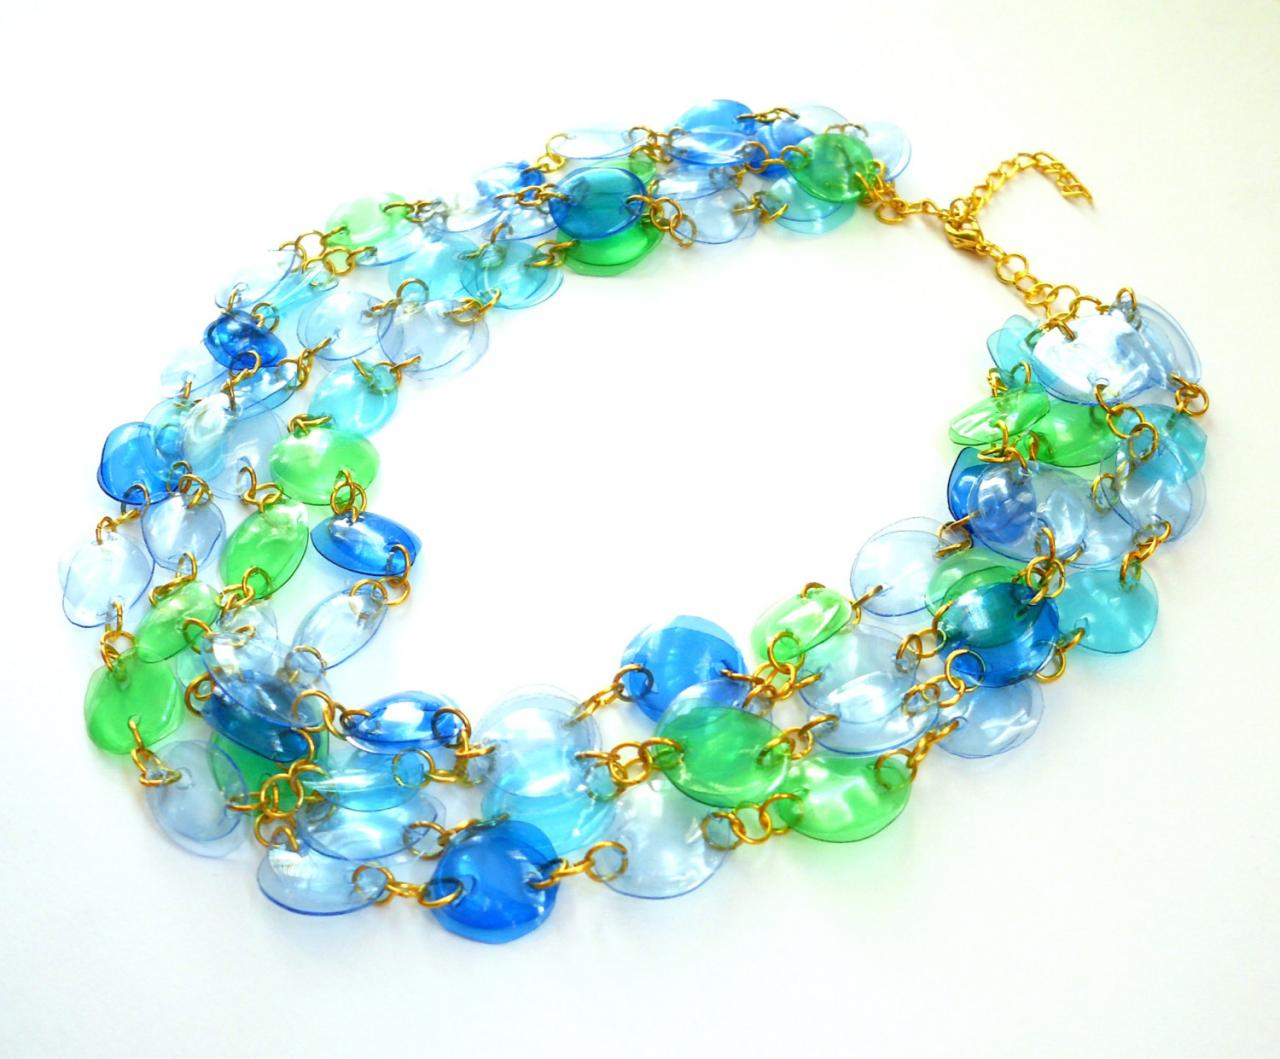 Statement Necklace Handmade Of Recycled Plastic Bottles In ...